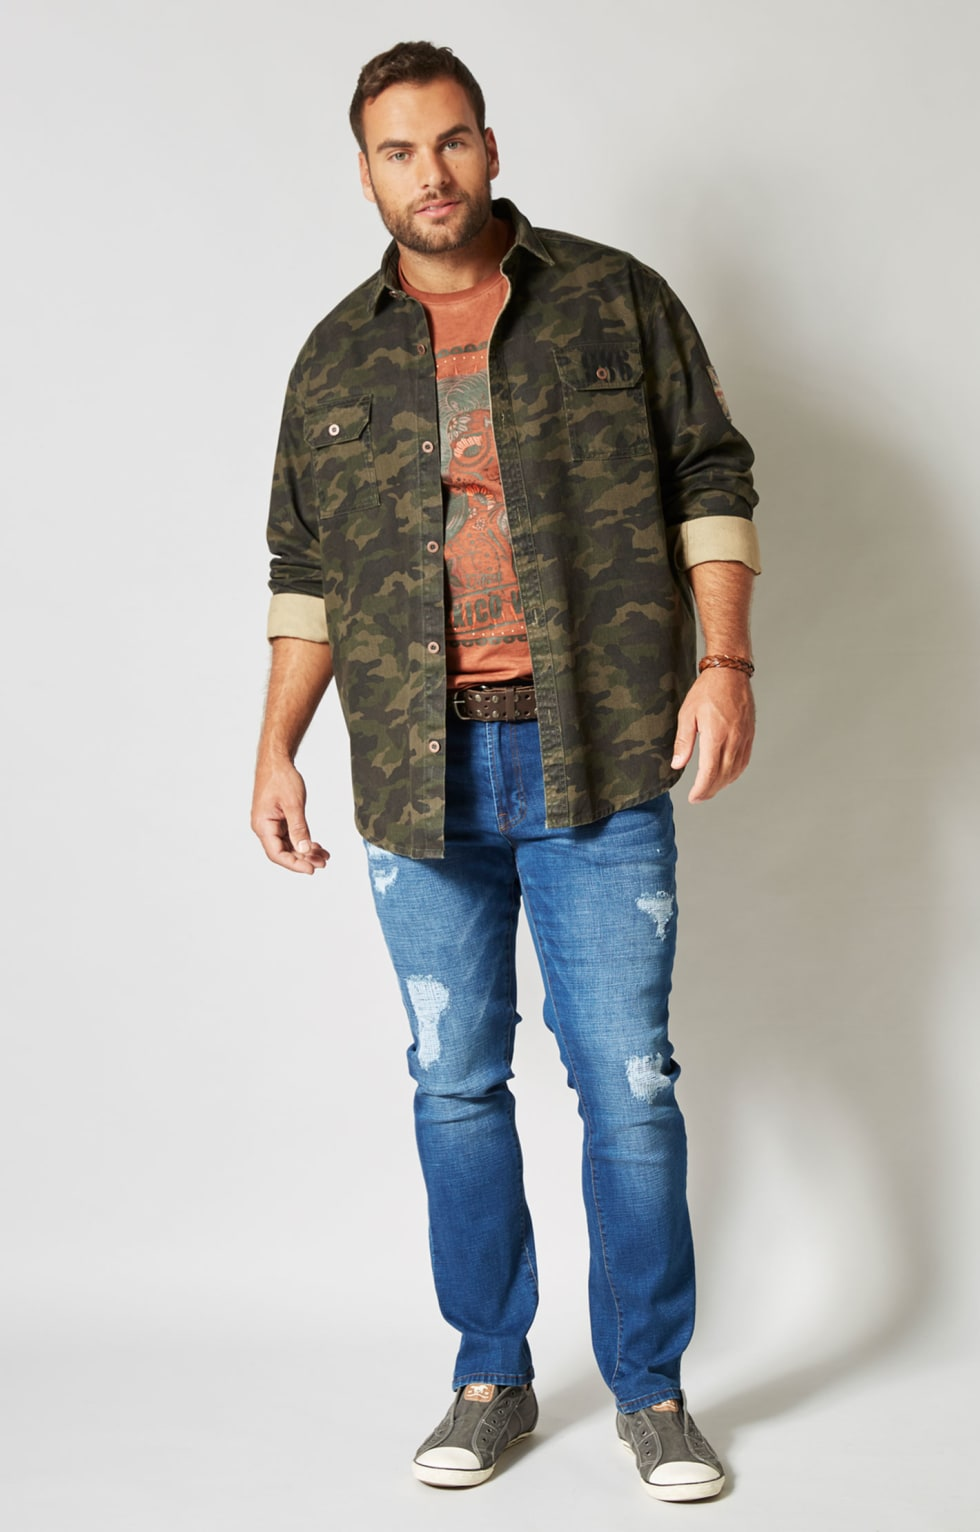 Herren Outfit Camouflage